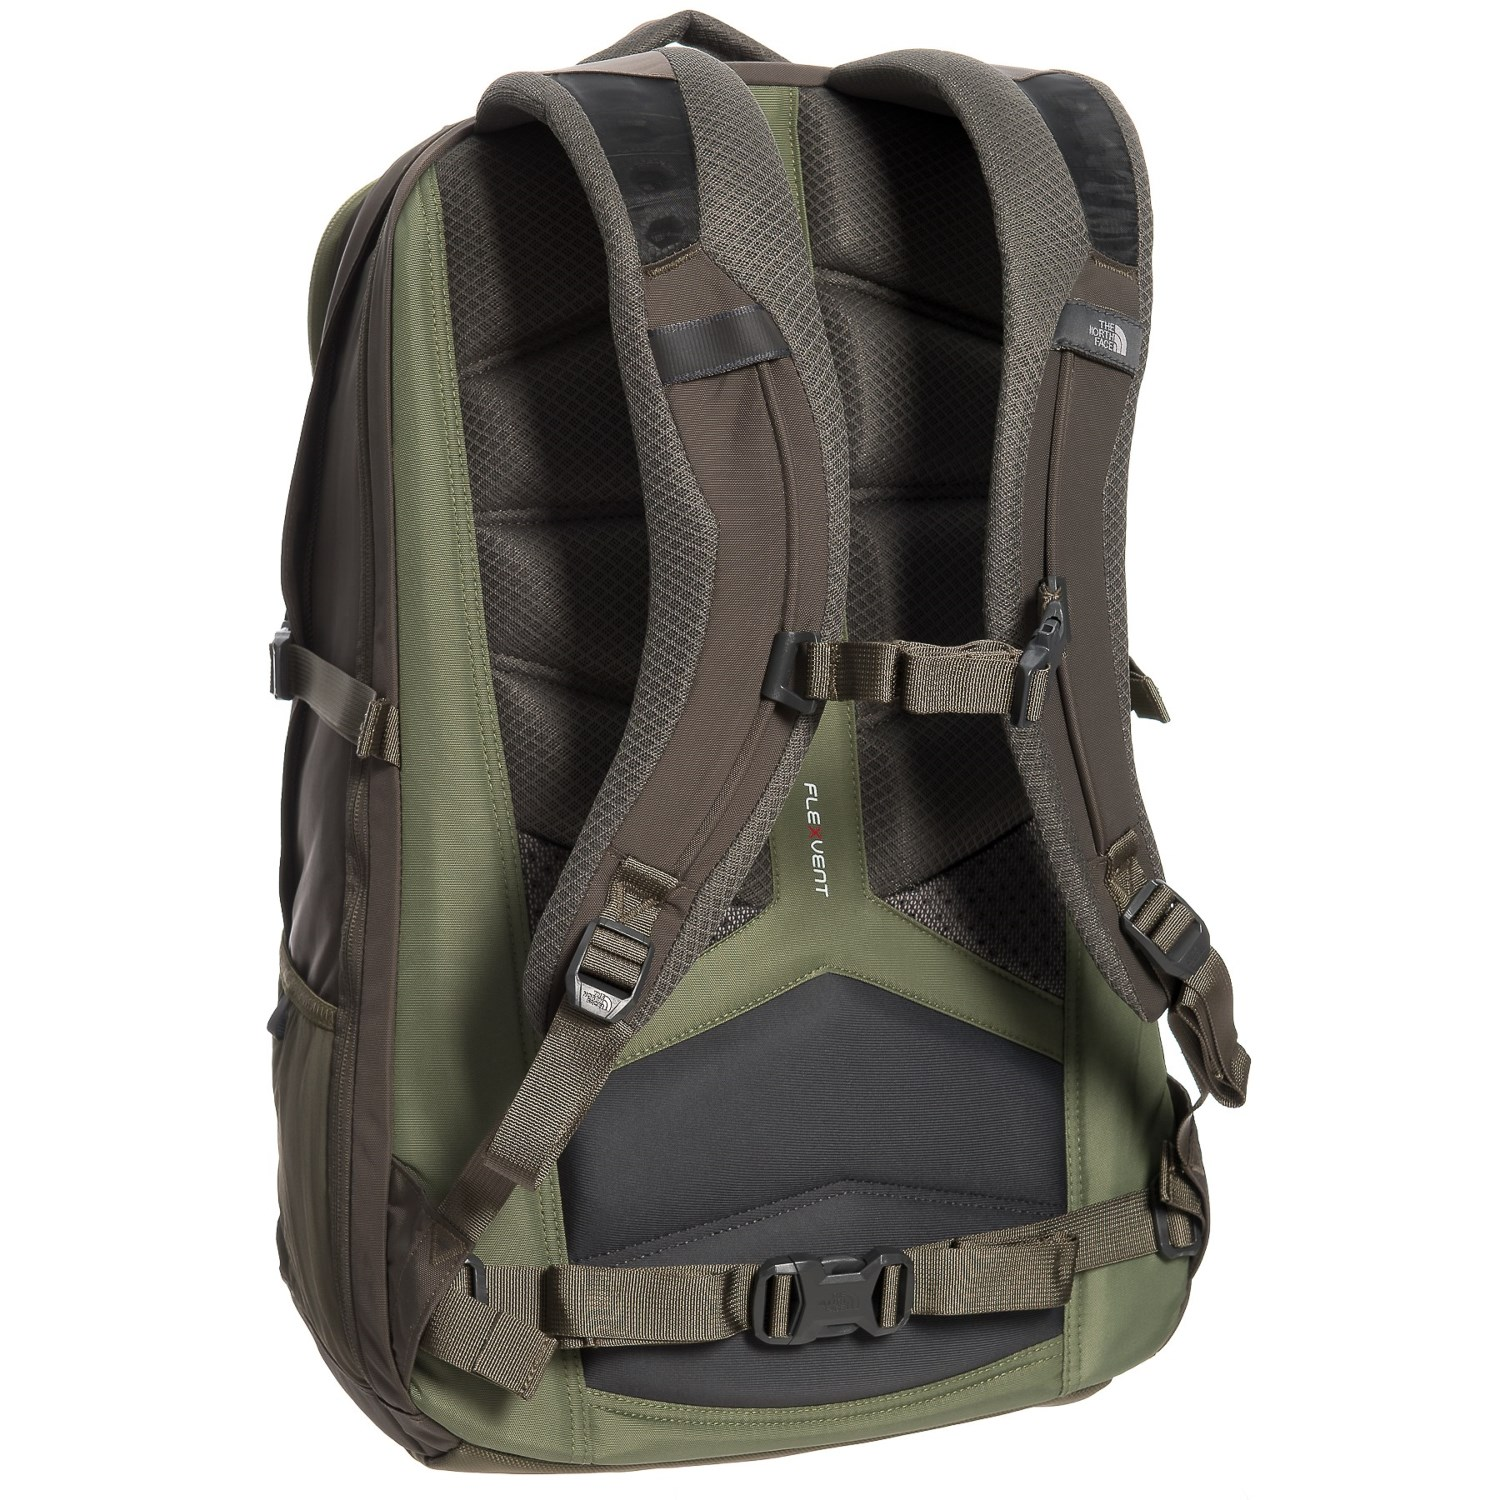 38dcca12c24b2c The North Face Router Transit Backpack Sale | Building Materials ...